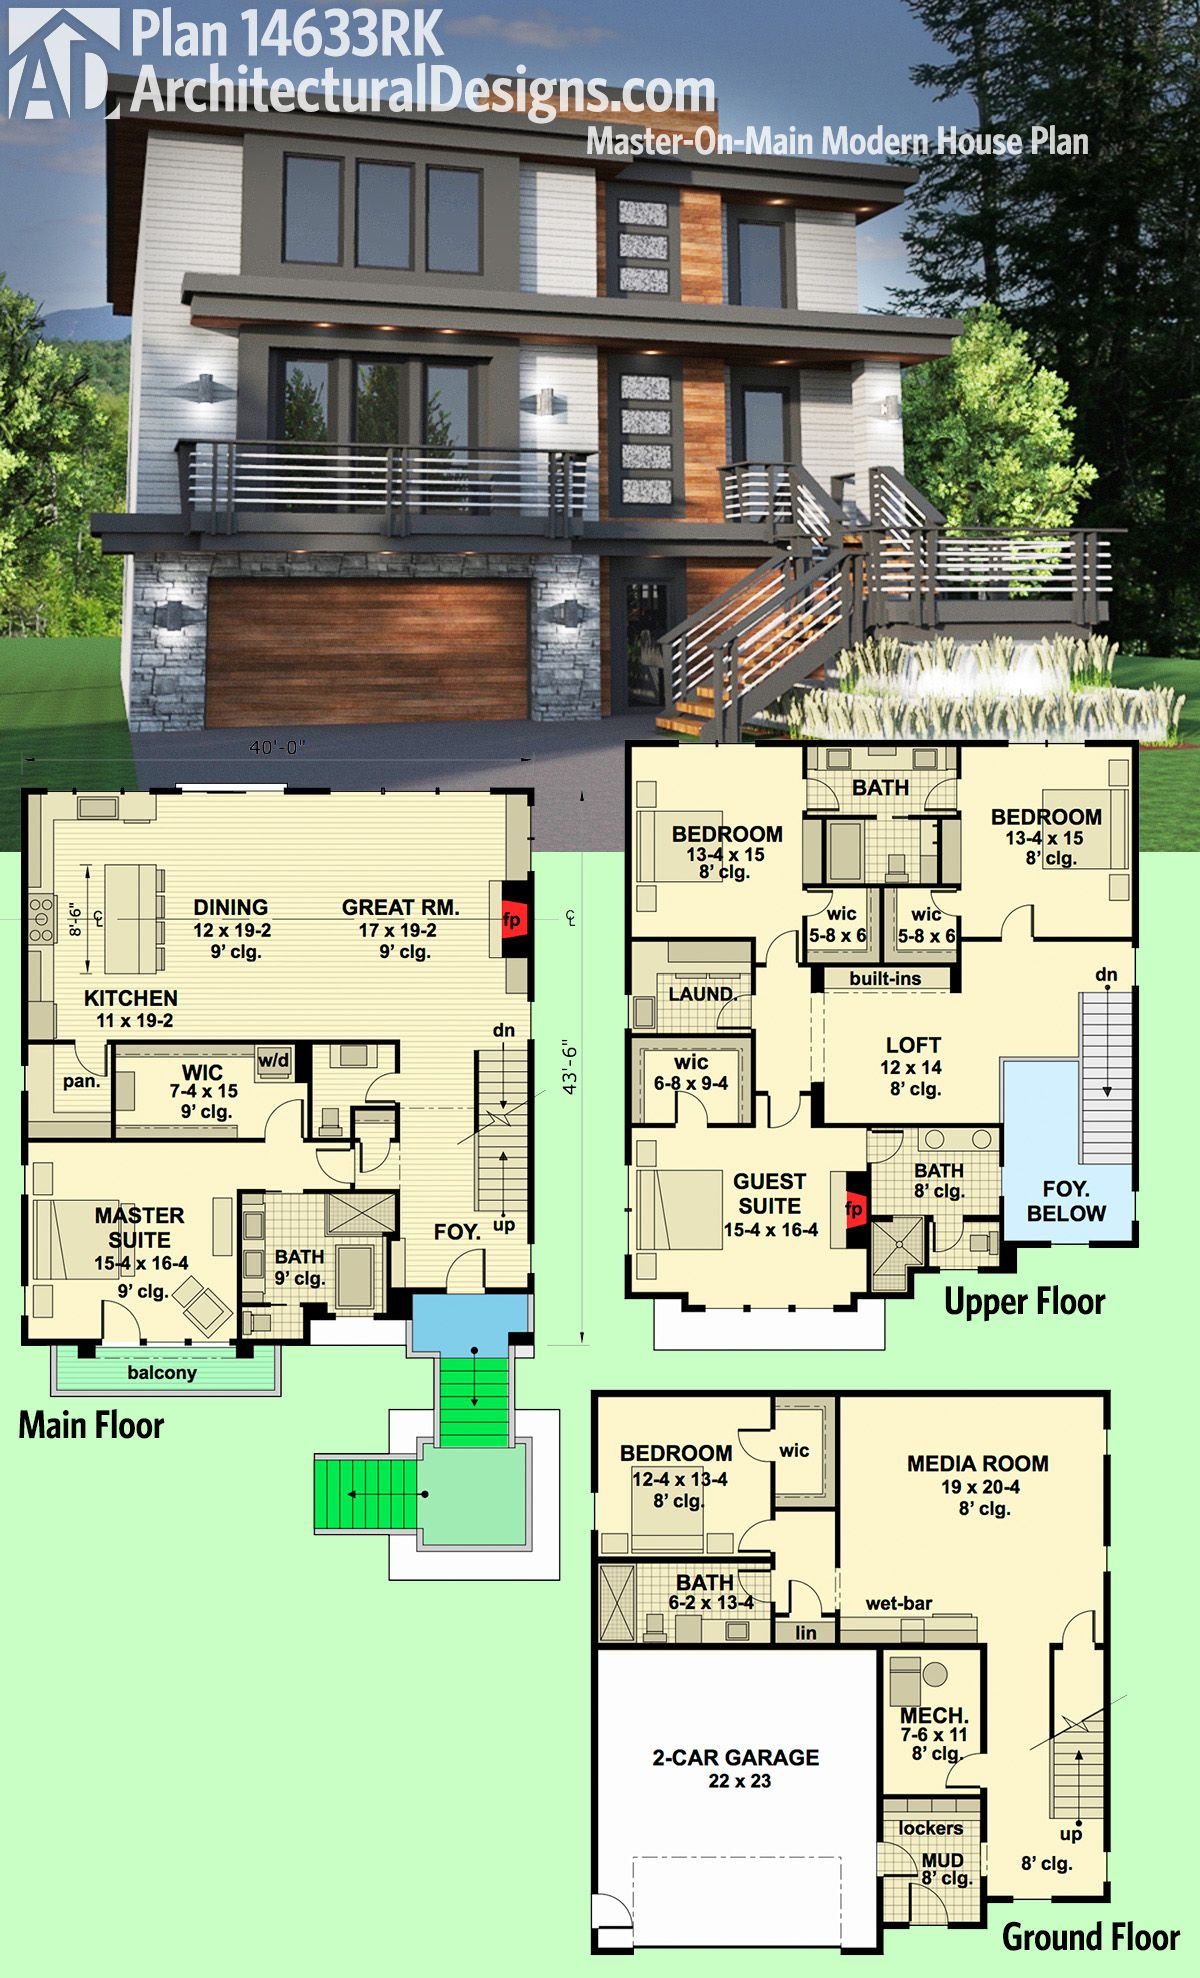 Plan 14633rk master on main modern house plan modern for Modern houses floor plans